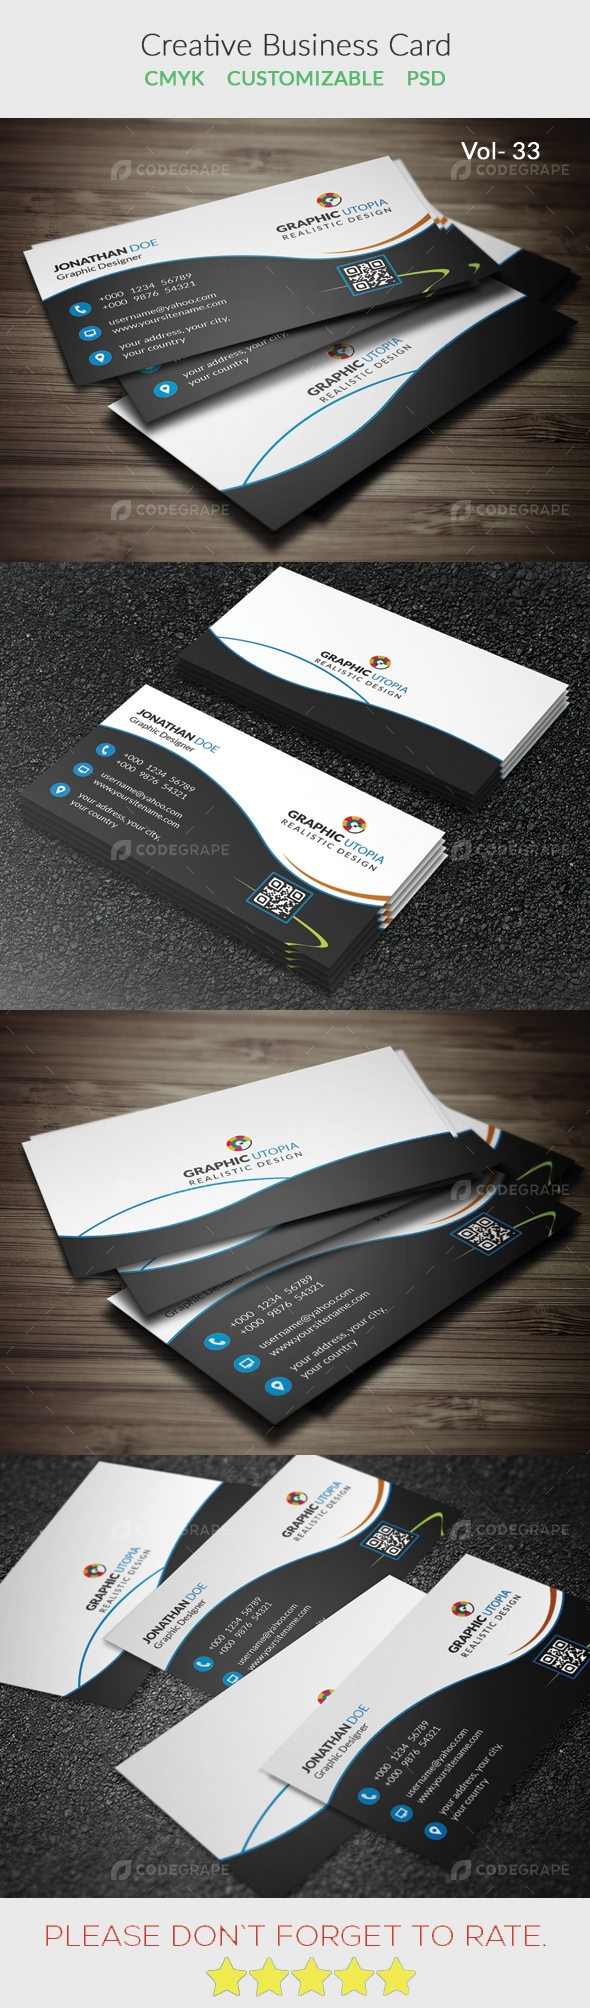 Creative Business Card V.33